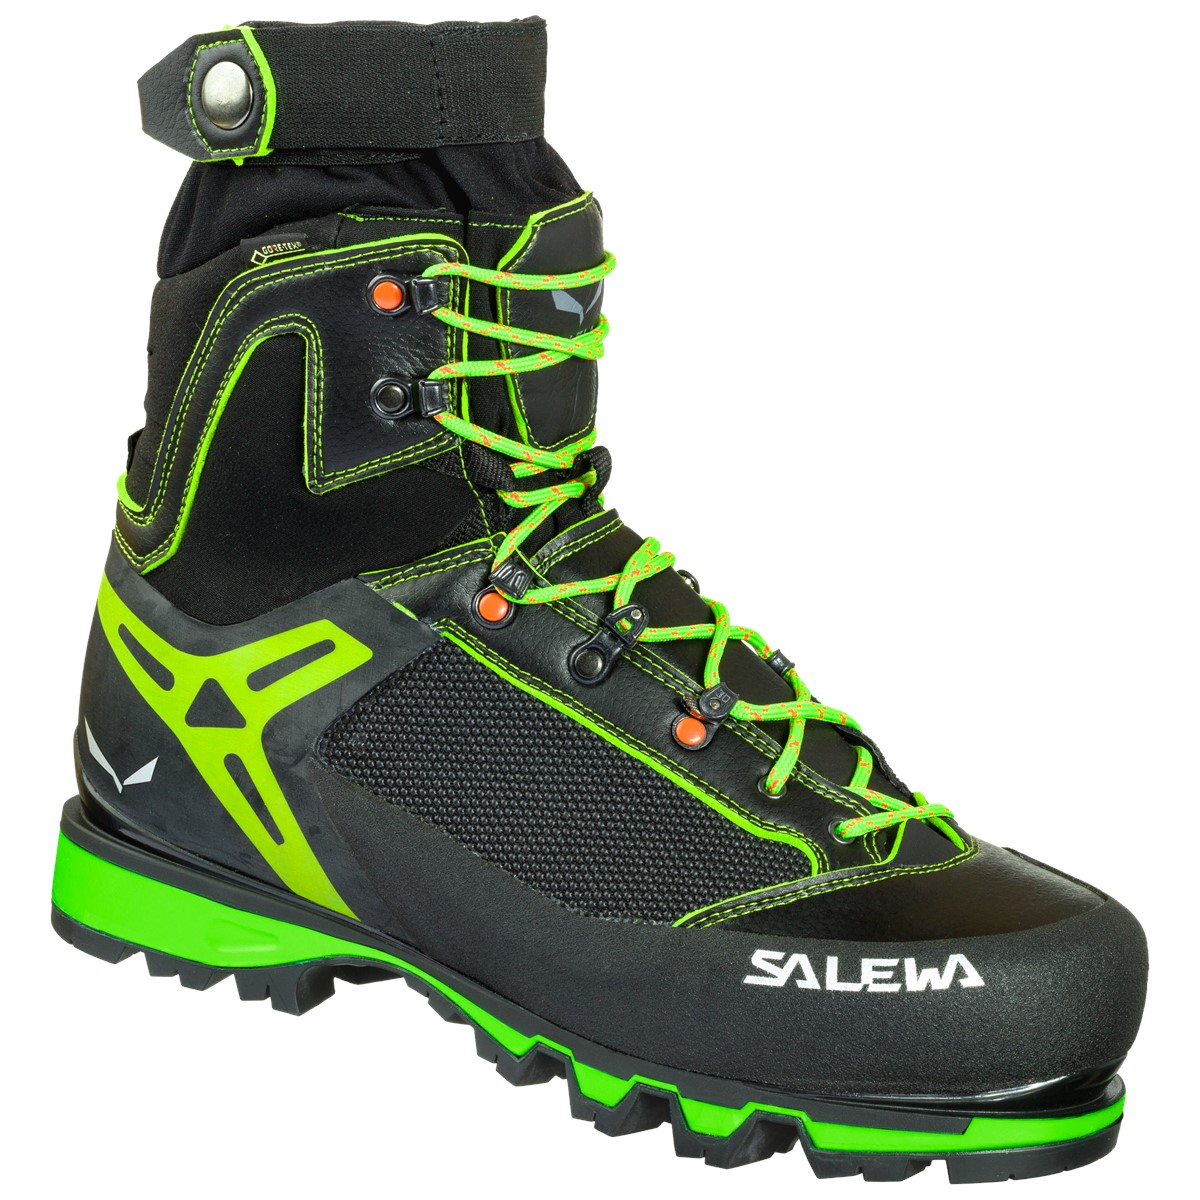 Salewa MS VULTUR VERTICAL GTX-Black/Cactus-7,5 - black/cactus - Gr. 7,5